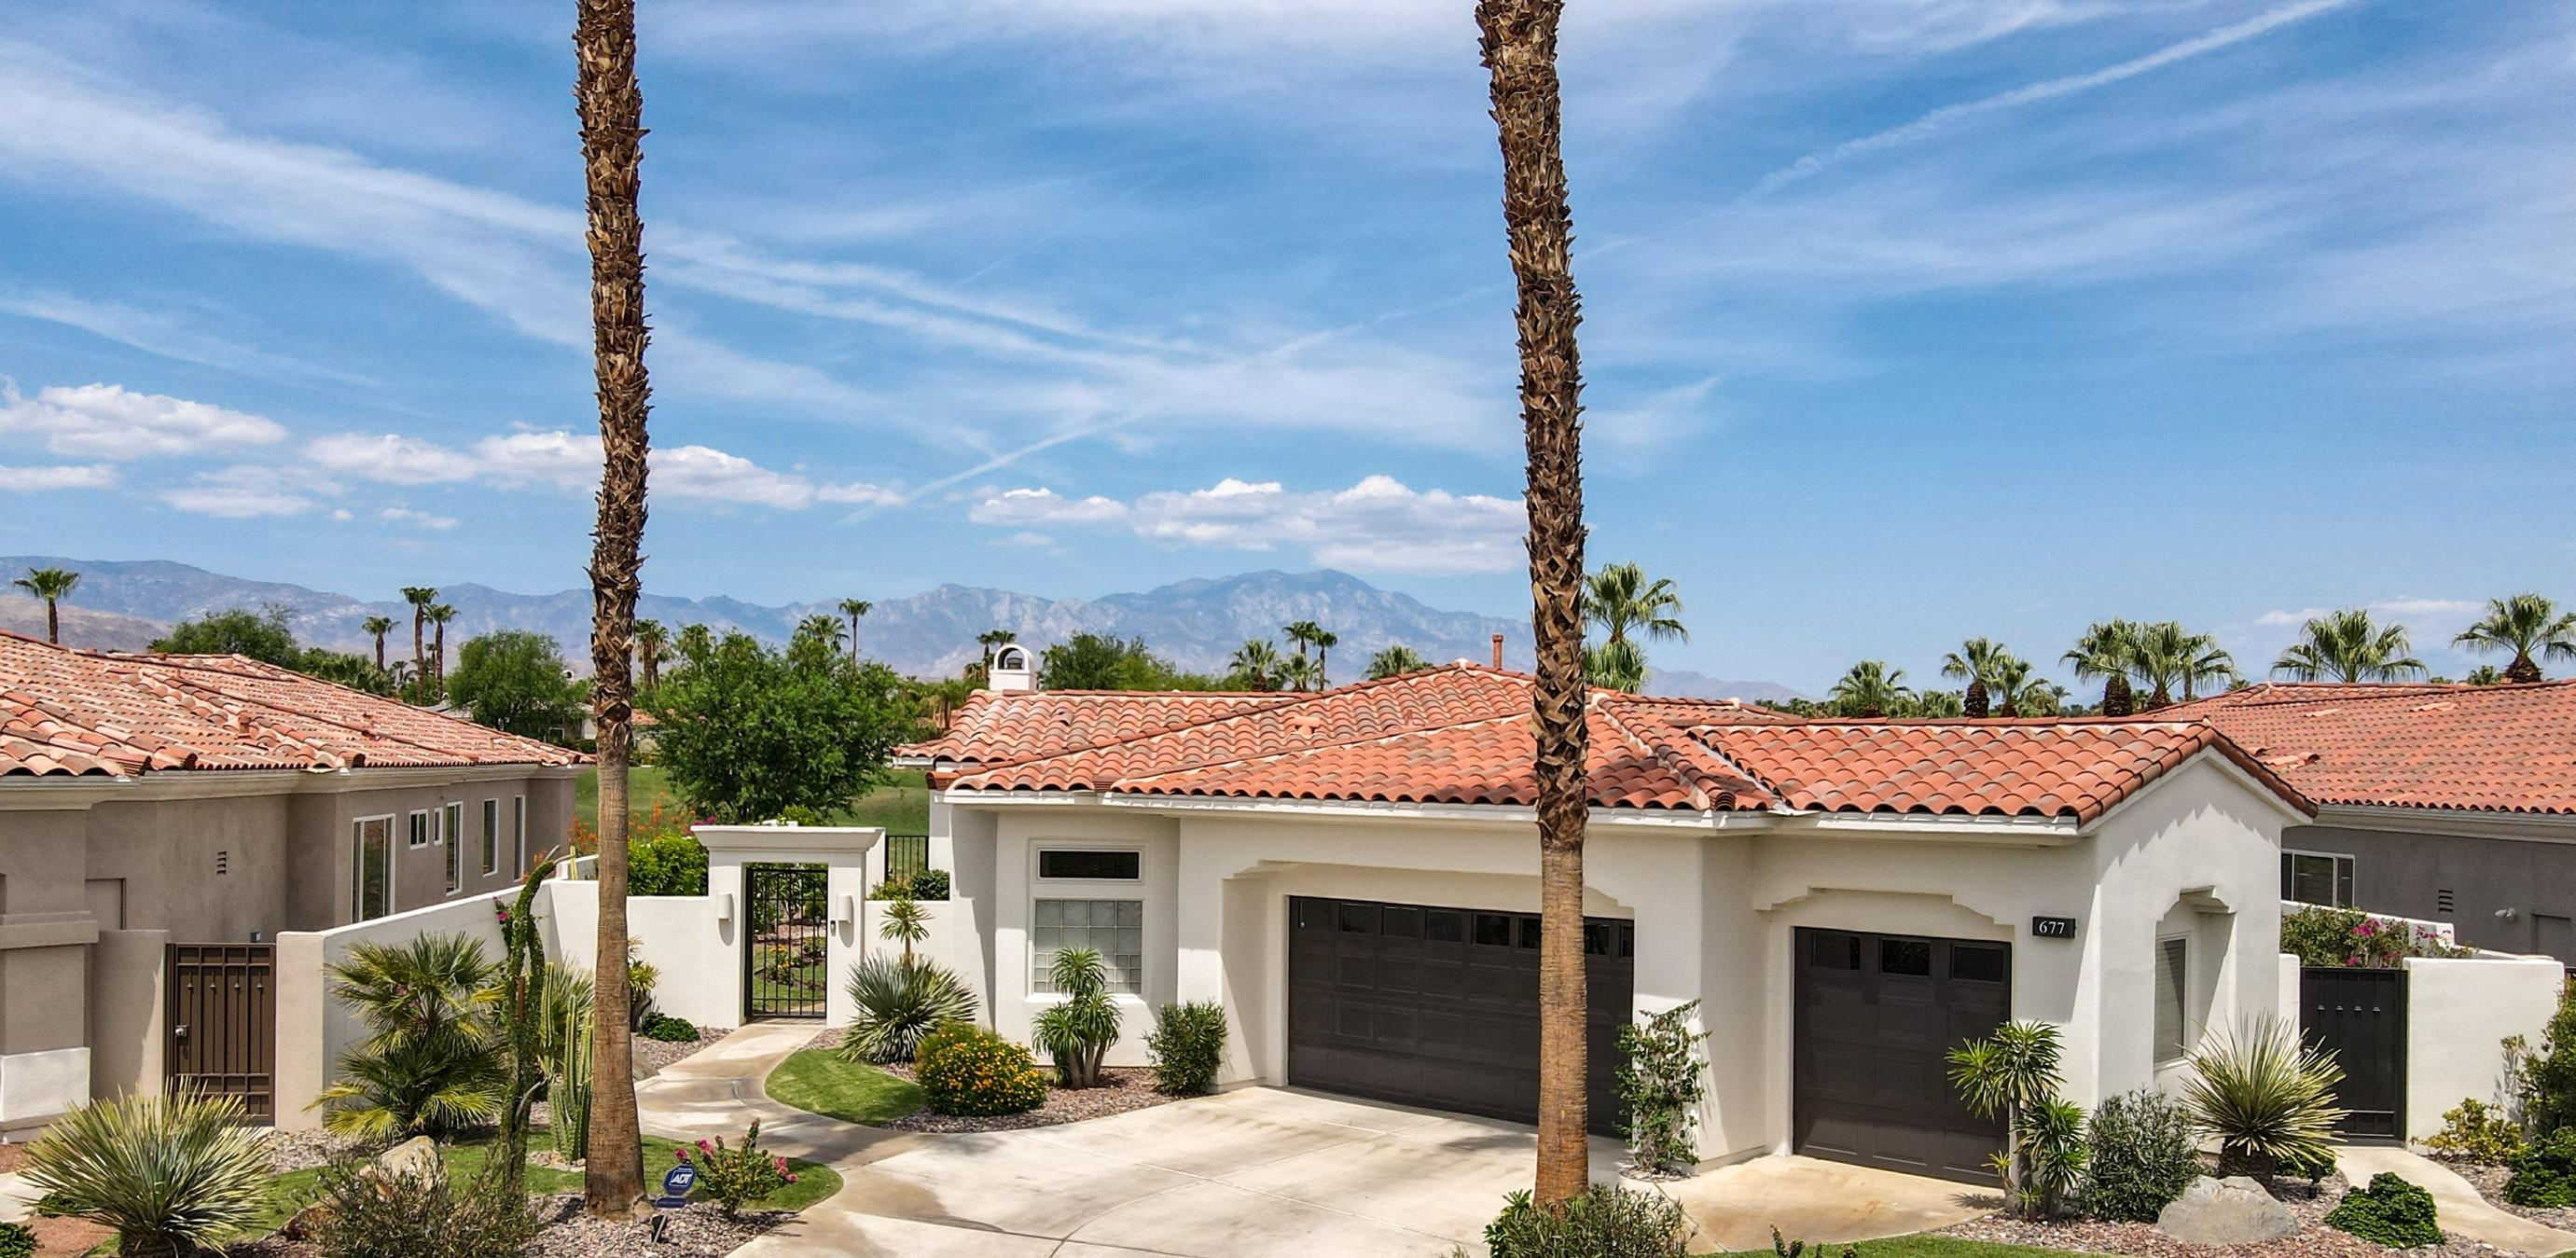 Very Desired Indian Ridge Country Club Popular Ocotillo 2 home located on a private West facing oversized panoramic view lot!  Boasting an open floor plan with soaring ceilings, this recently remodeled light and bright 4-bedroom and 4-bathroom home takes advantage of the indoor/outdoor lifestyle due to the many windows and glass sliders. Tons of recent updates include modern porcelain tile throughout, new baseboards, 70+ LED recessed lights, electric color changing fireplace in the family room, brand new stainless steel KitchenAid & LG appliances, whole house water filtration & softener system with reverse osmosis drinking water system in kitchen, Hunter Douglas remote blinds, freshly painted cabinets in the kitchen and laundry room, all new custom cabinets with quartz counter tops in the bathrooms, completely renovated powder room with Italian made porcelain countertop & sink. The owner has converted the dining room into a 4th bedroom/private office to maximize the interior space and provide another sanctuary. Overlooking the green off the 14th hole on the Arroyo Course, the spacious outdoor living area has spectacular panoramic mountain views and is large enough for a private pool. The exterior of the home includes new exterior paint, brand new landscaping and irrigation, outdoor lighting and room to build a casita!  Additional upgrades include two tankless water heaters, newer A/C unit, state of the art security and custom closet organization.